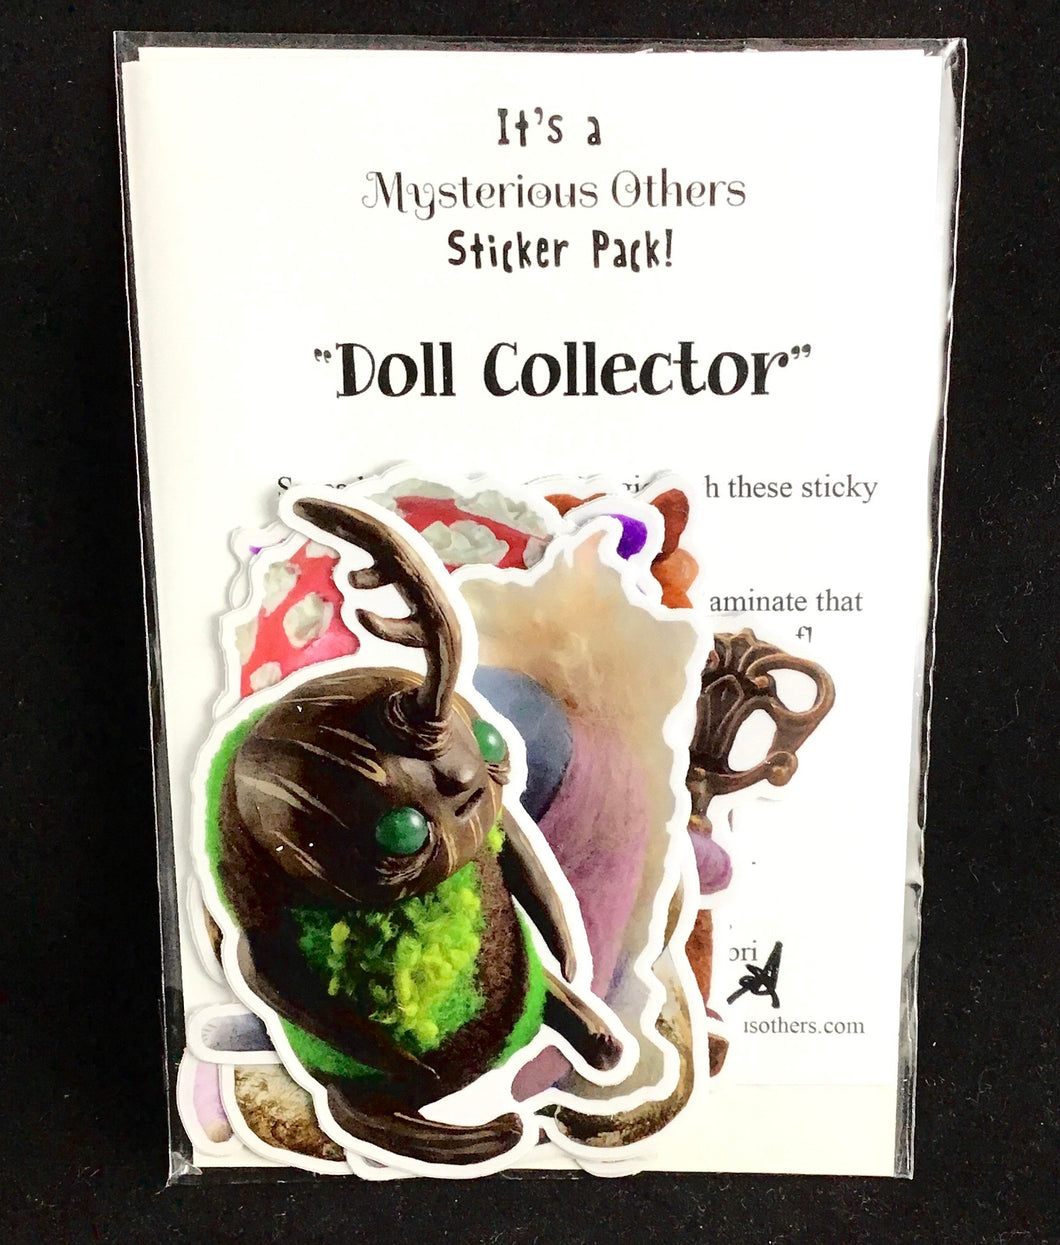 Sticker pack - Doll Collector